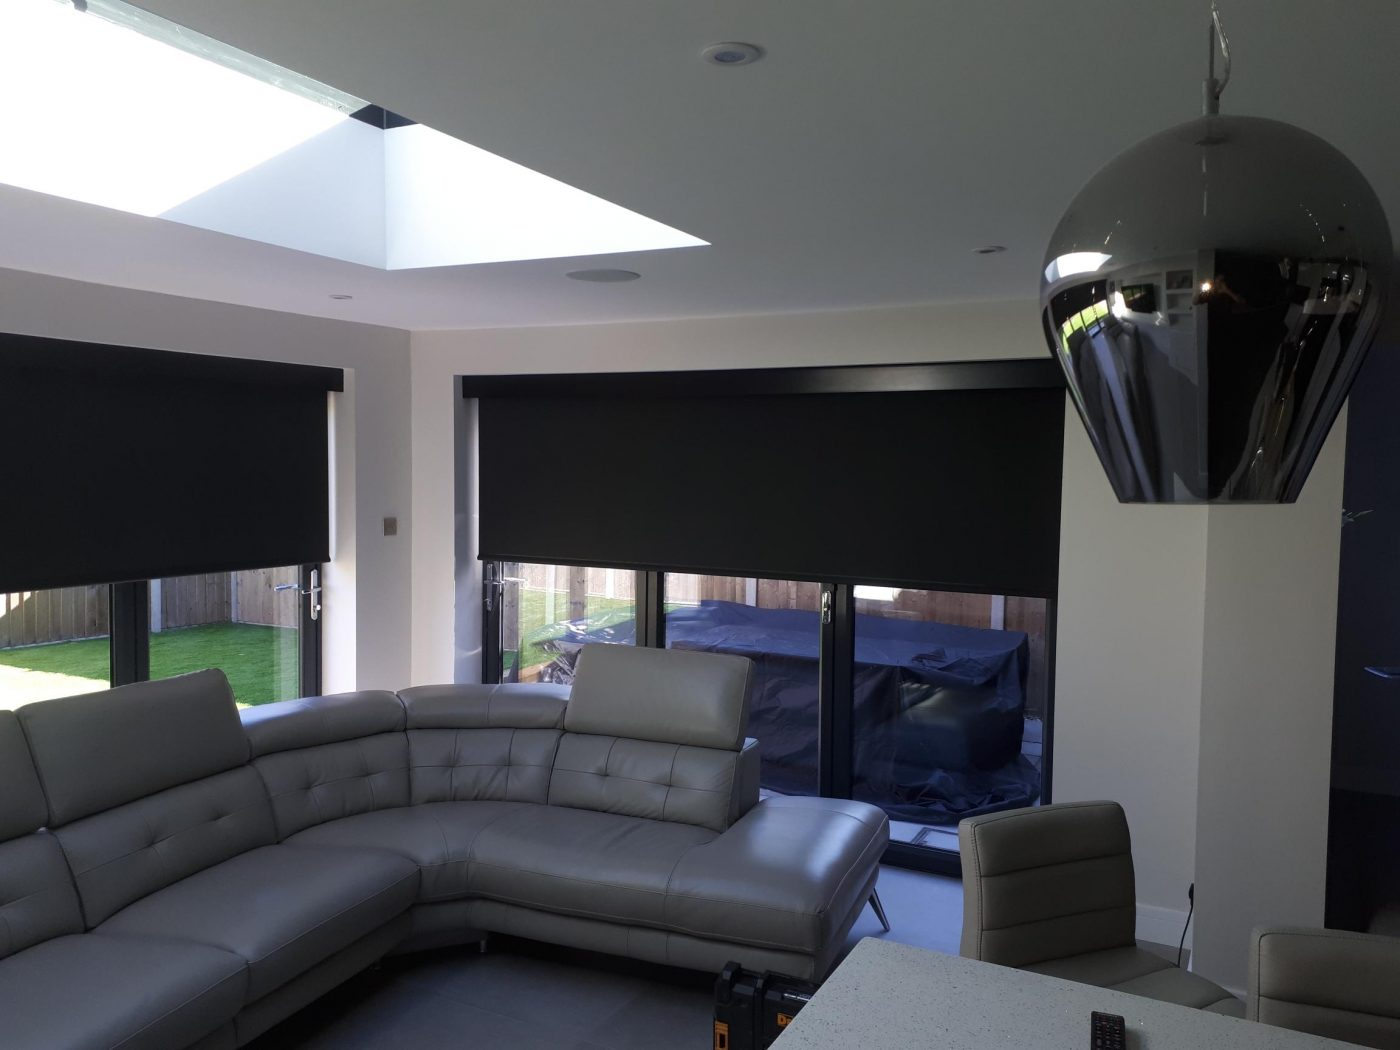 Electric Blinds BiFold Doors - Fitted in Yately By The Electric Blind Company